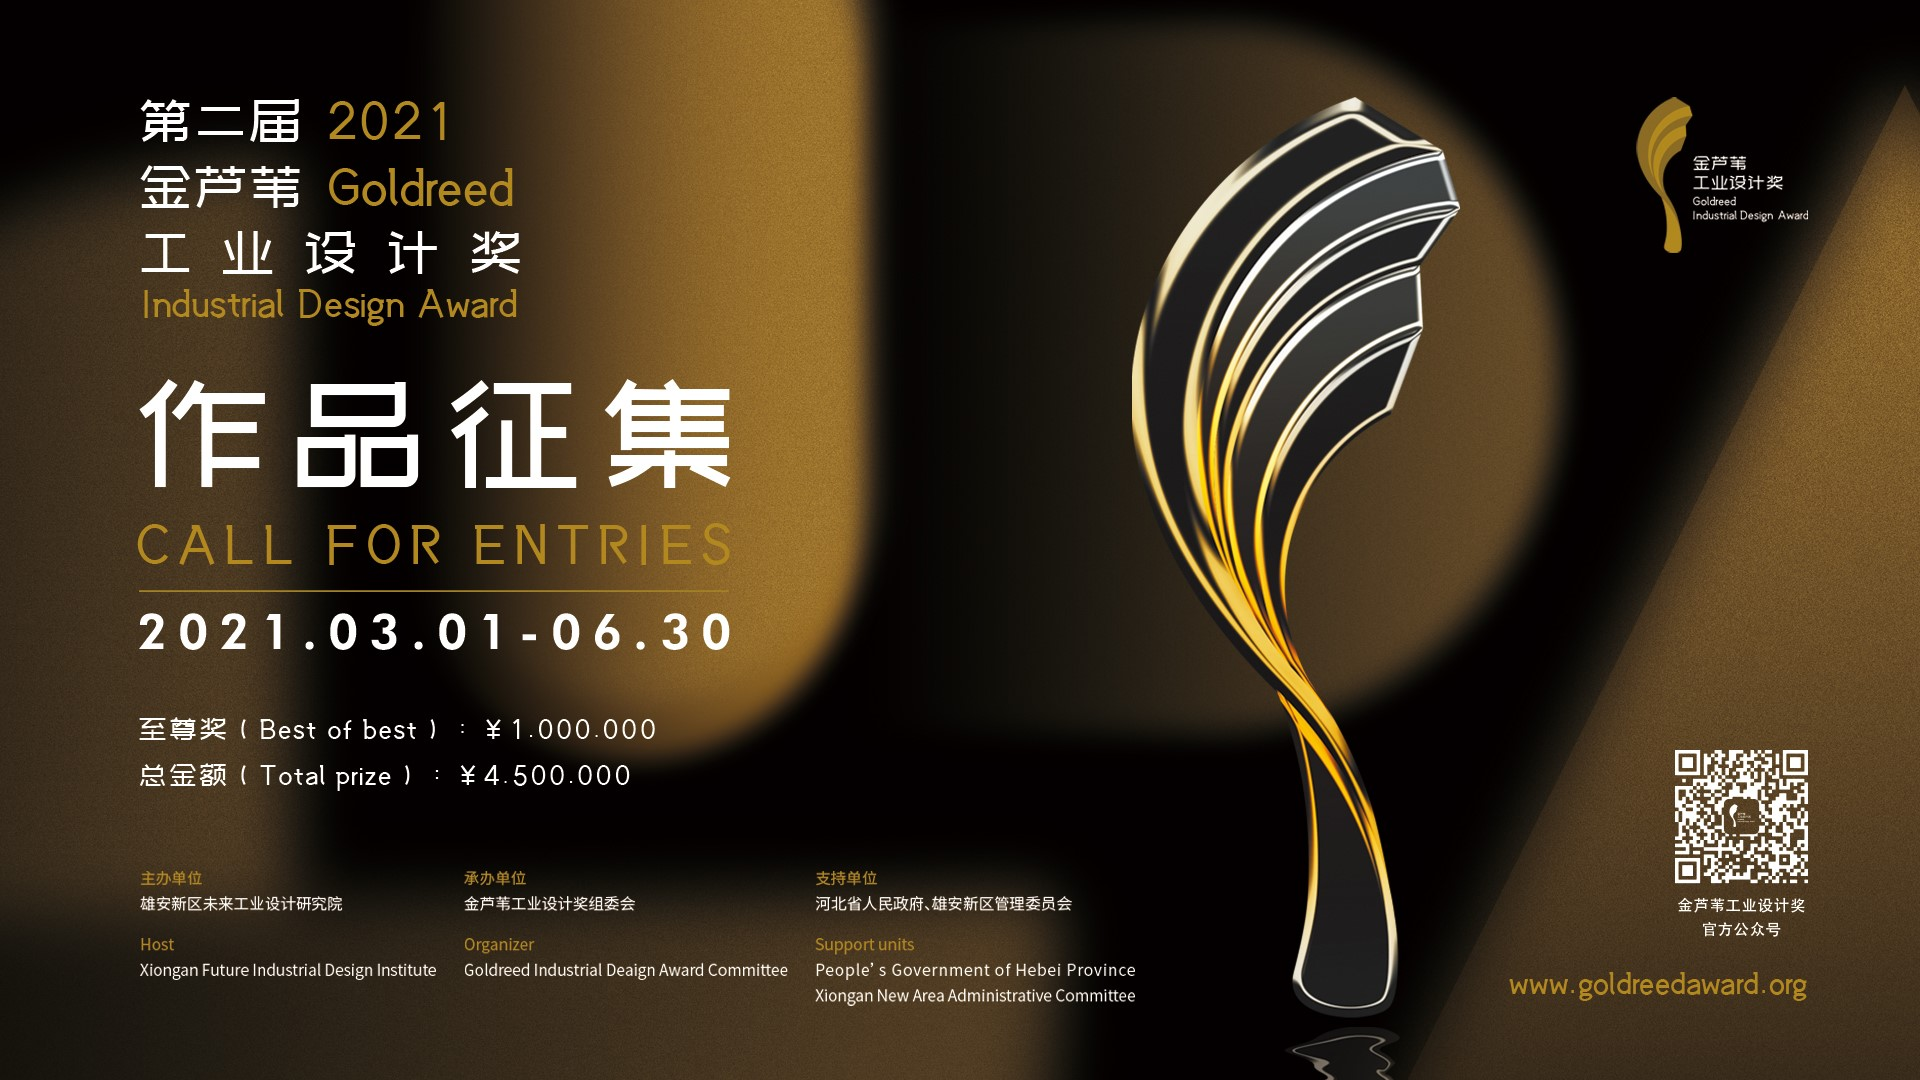 Supporting Event - 2021 Goldreed Industrial Design Award